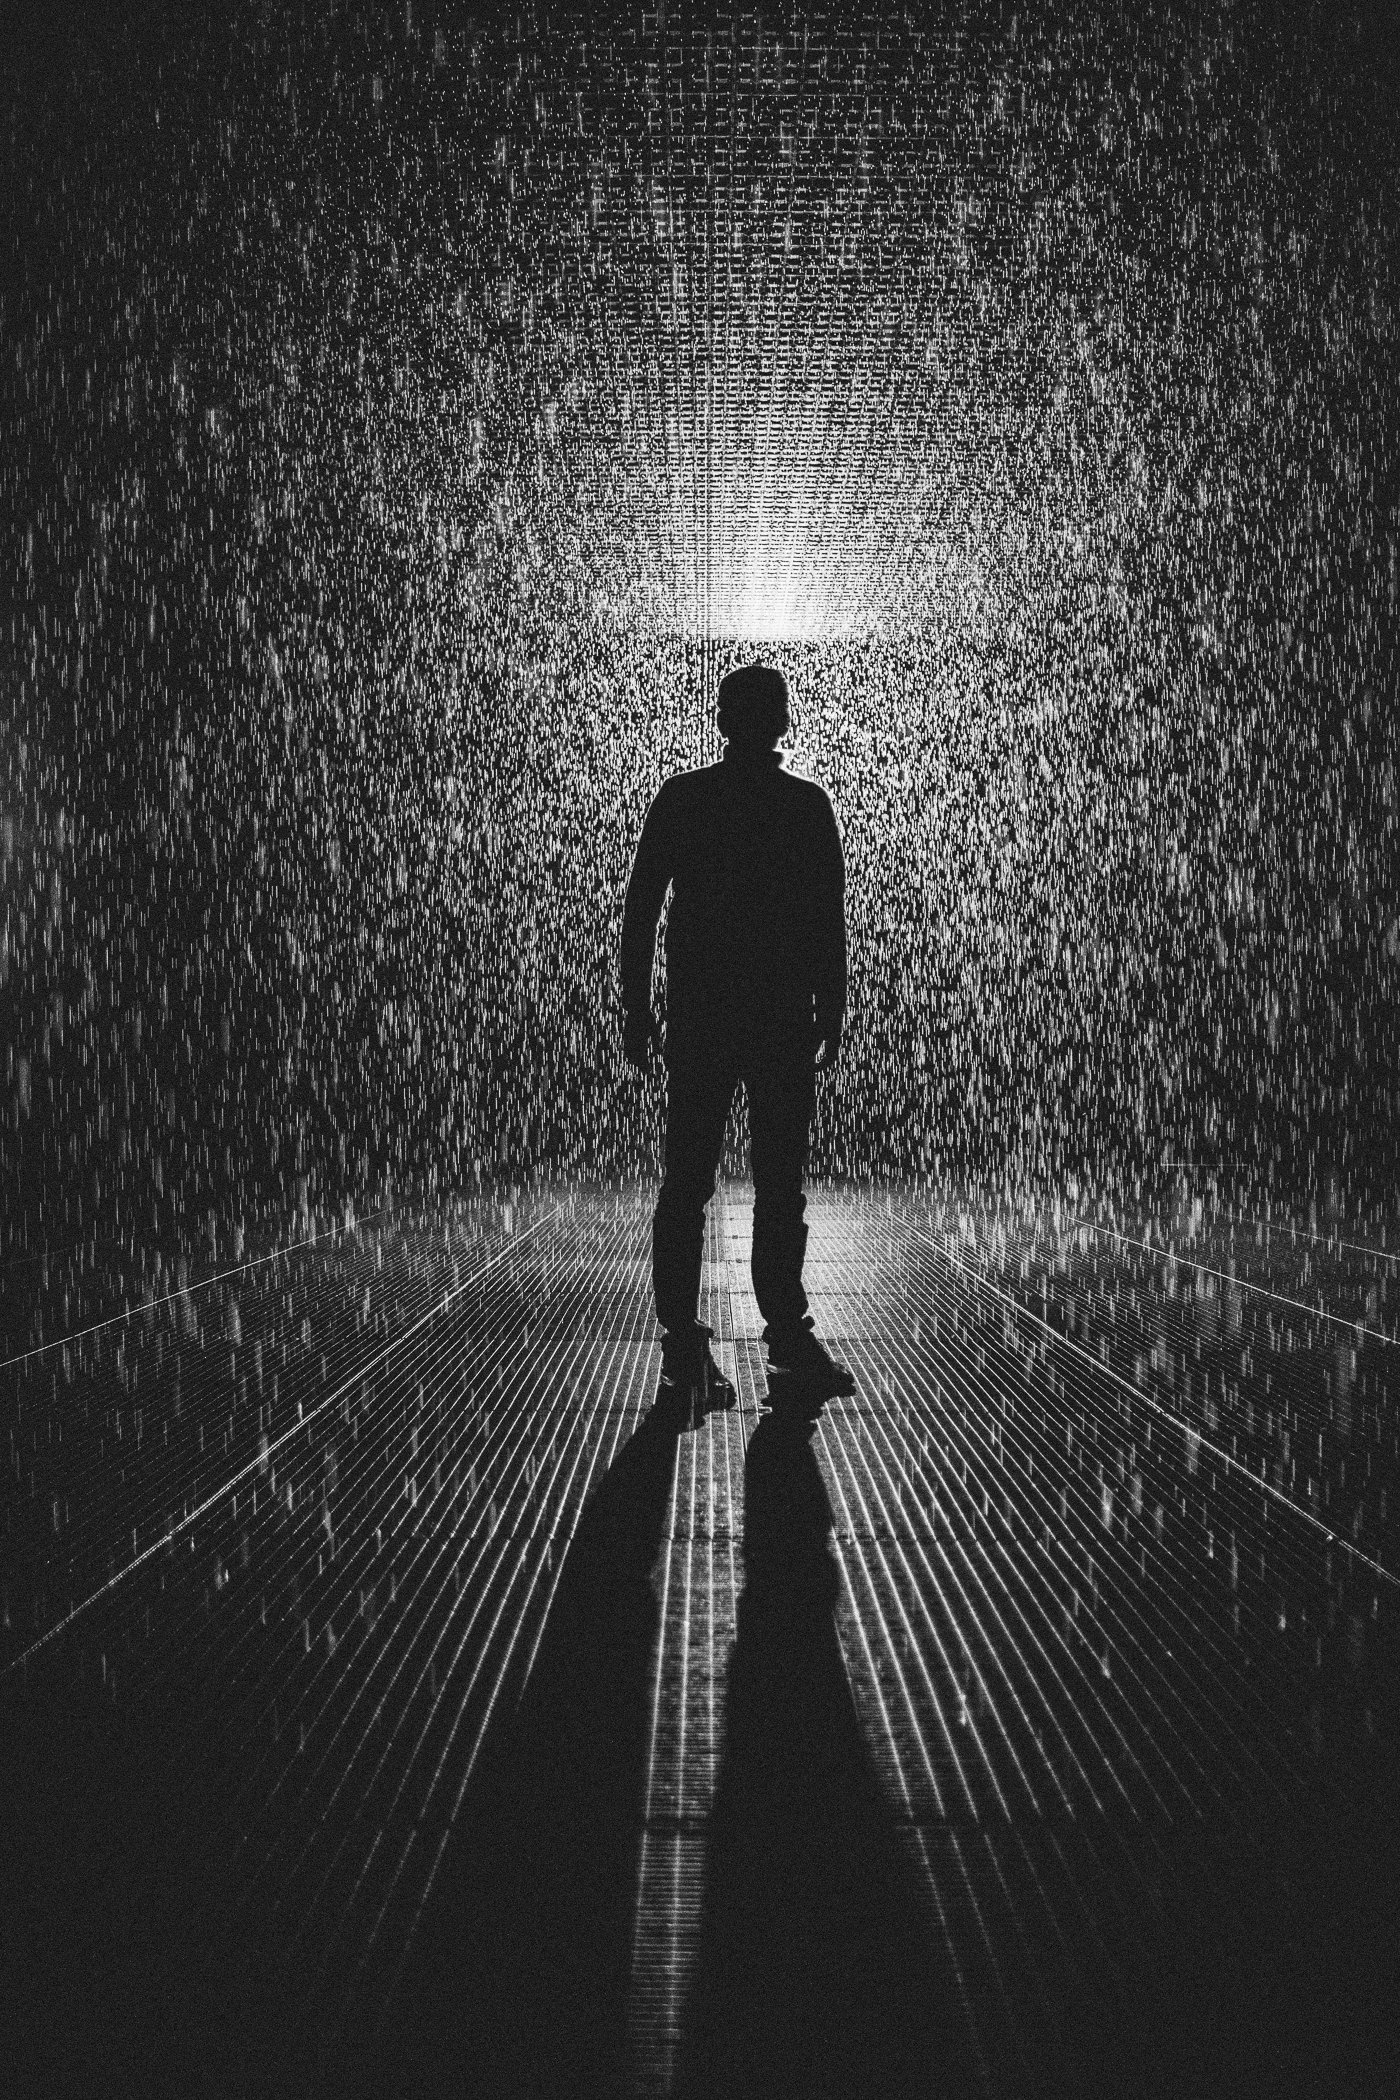 standing in the rain room - what to experience